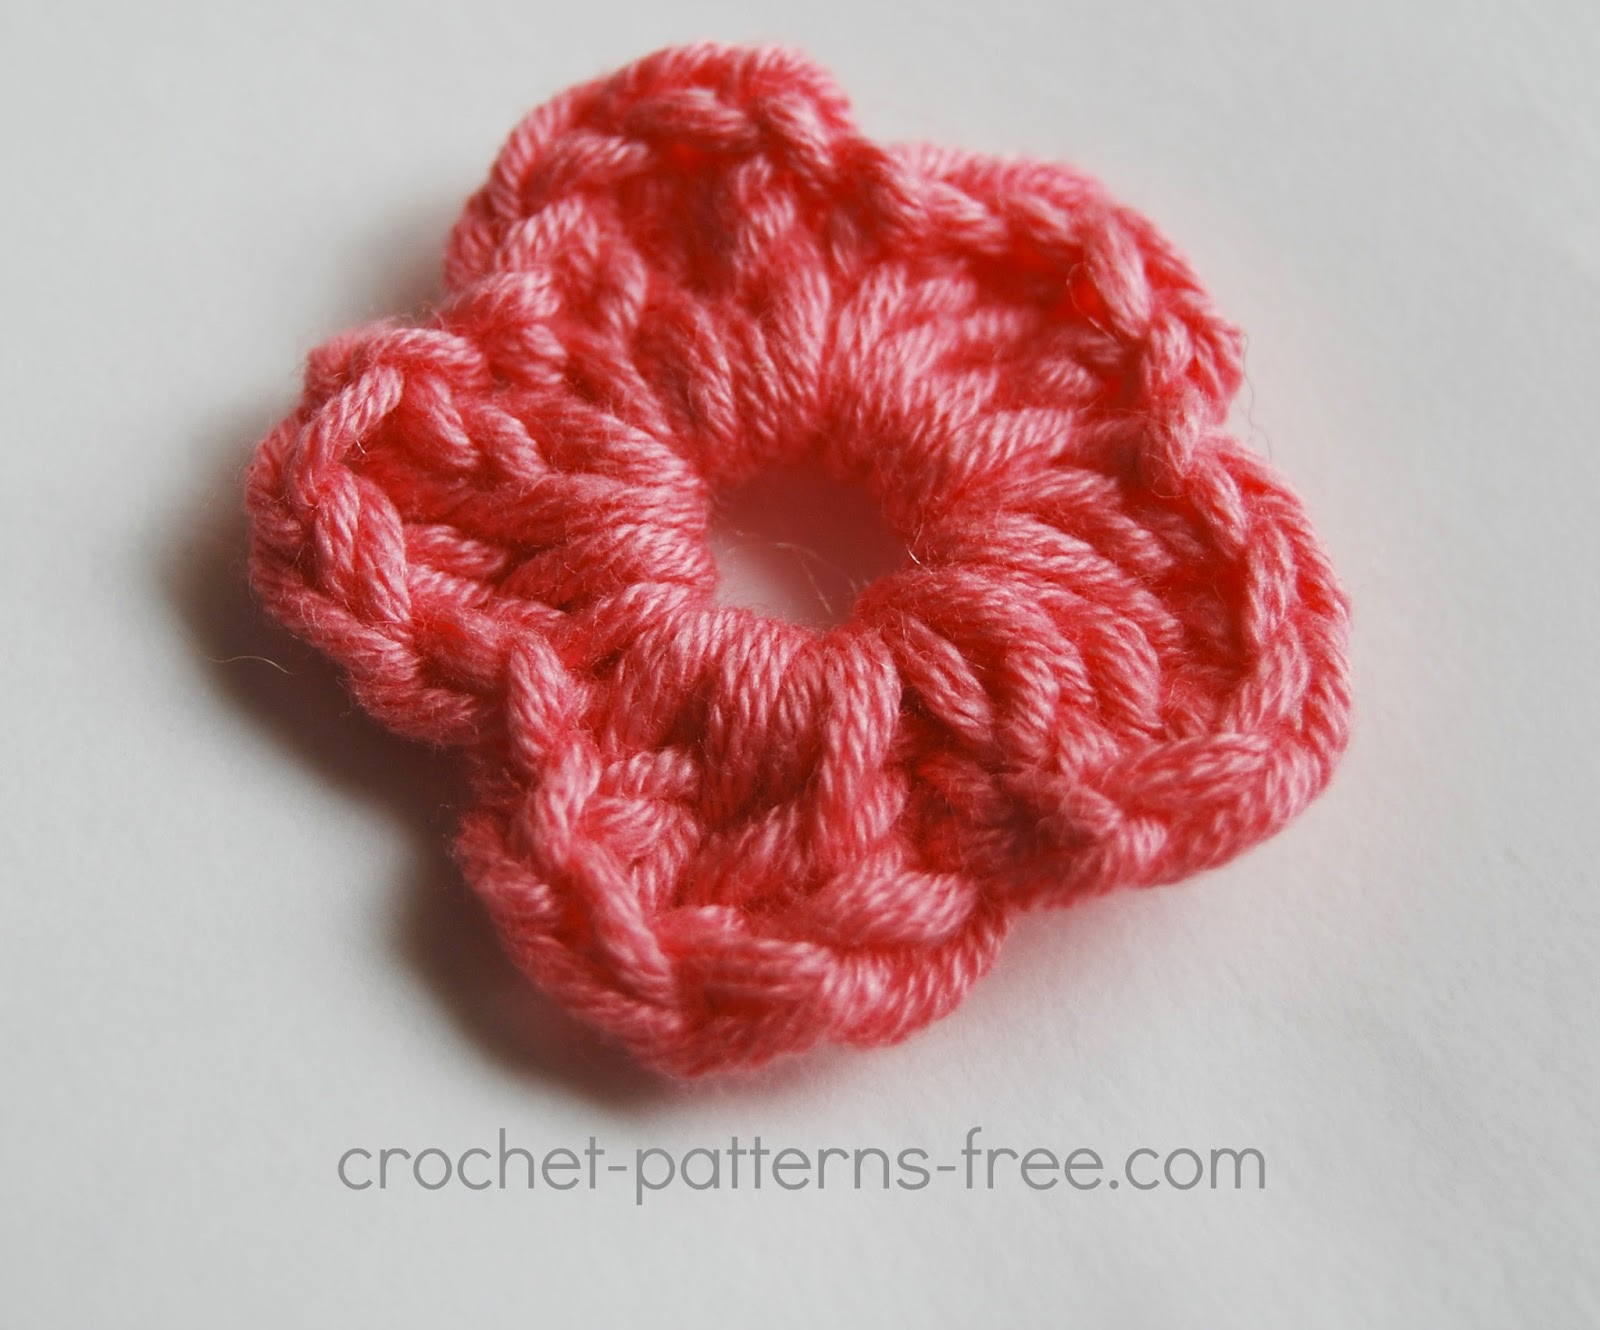 Small crochet flower patterns free crochet patterns free 2nd tiny crochet flower this bankloansurffo Images